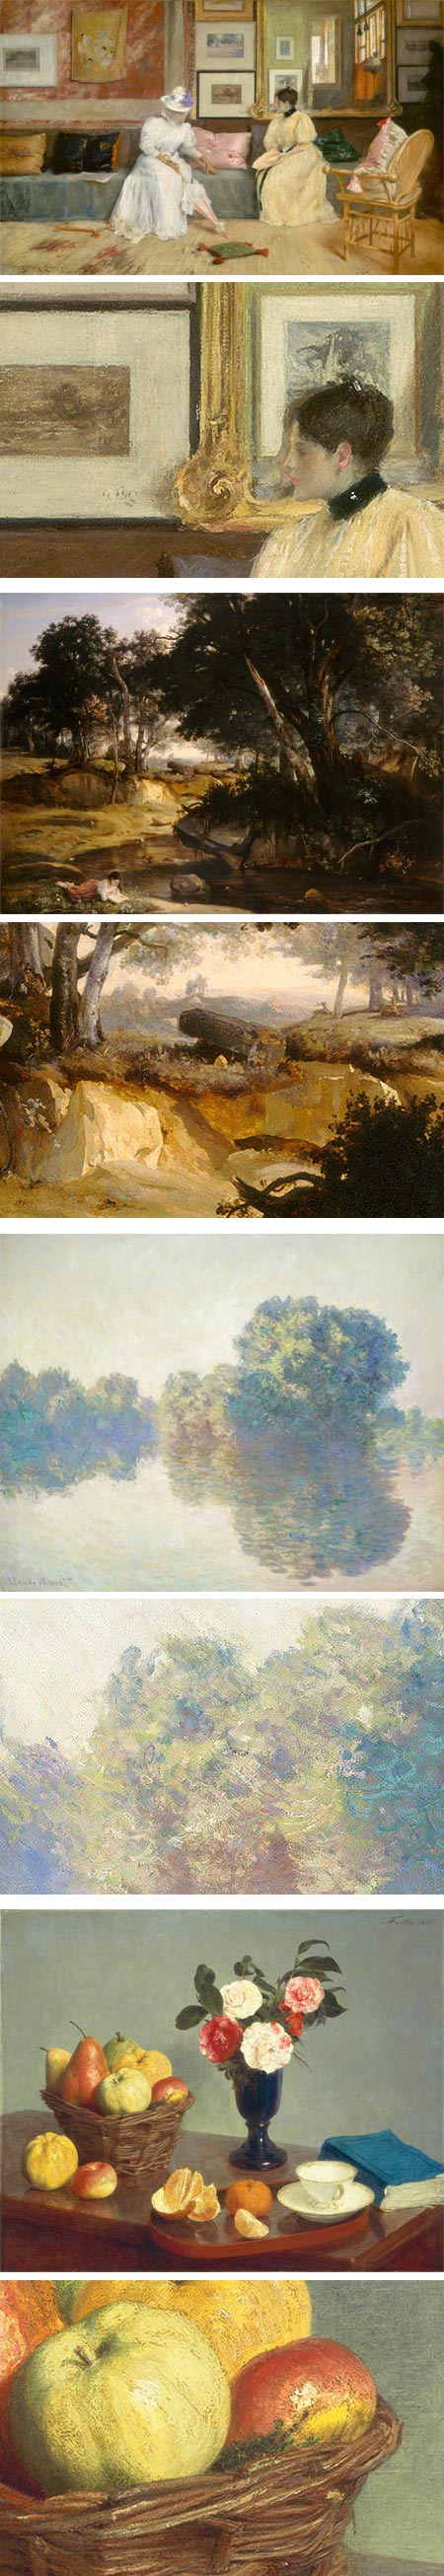 Chester Dale Collection on About.com: William Merritt Chase, Jean-Baptiste-Camile Corot, Claude Monet, Henri Fantin-Latour